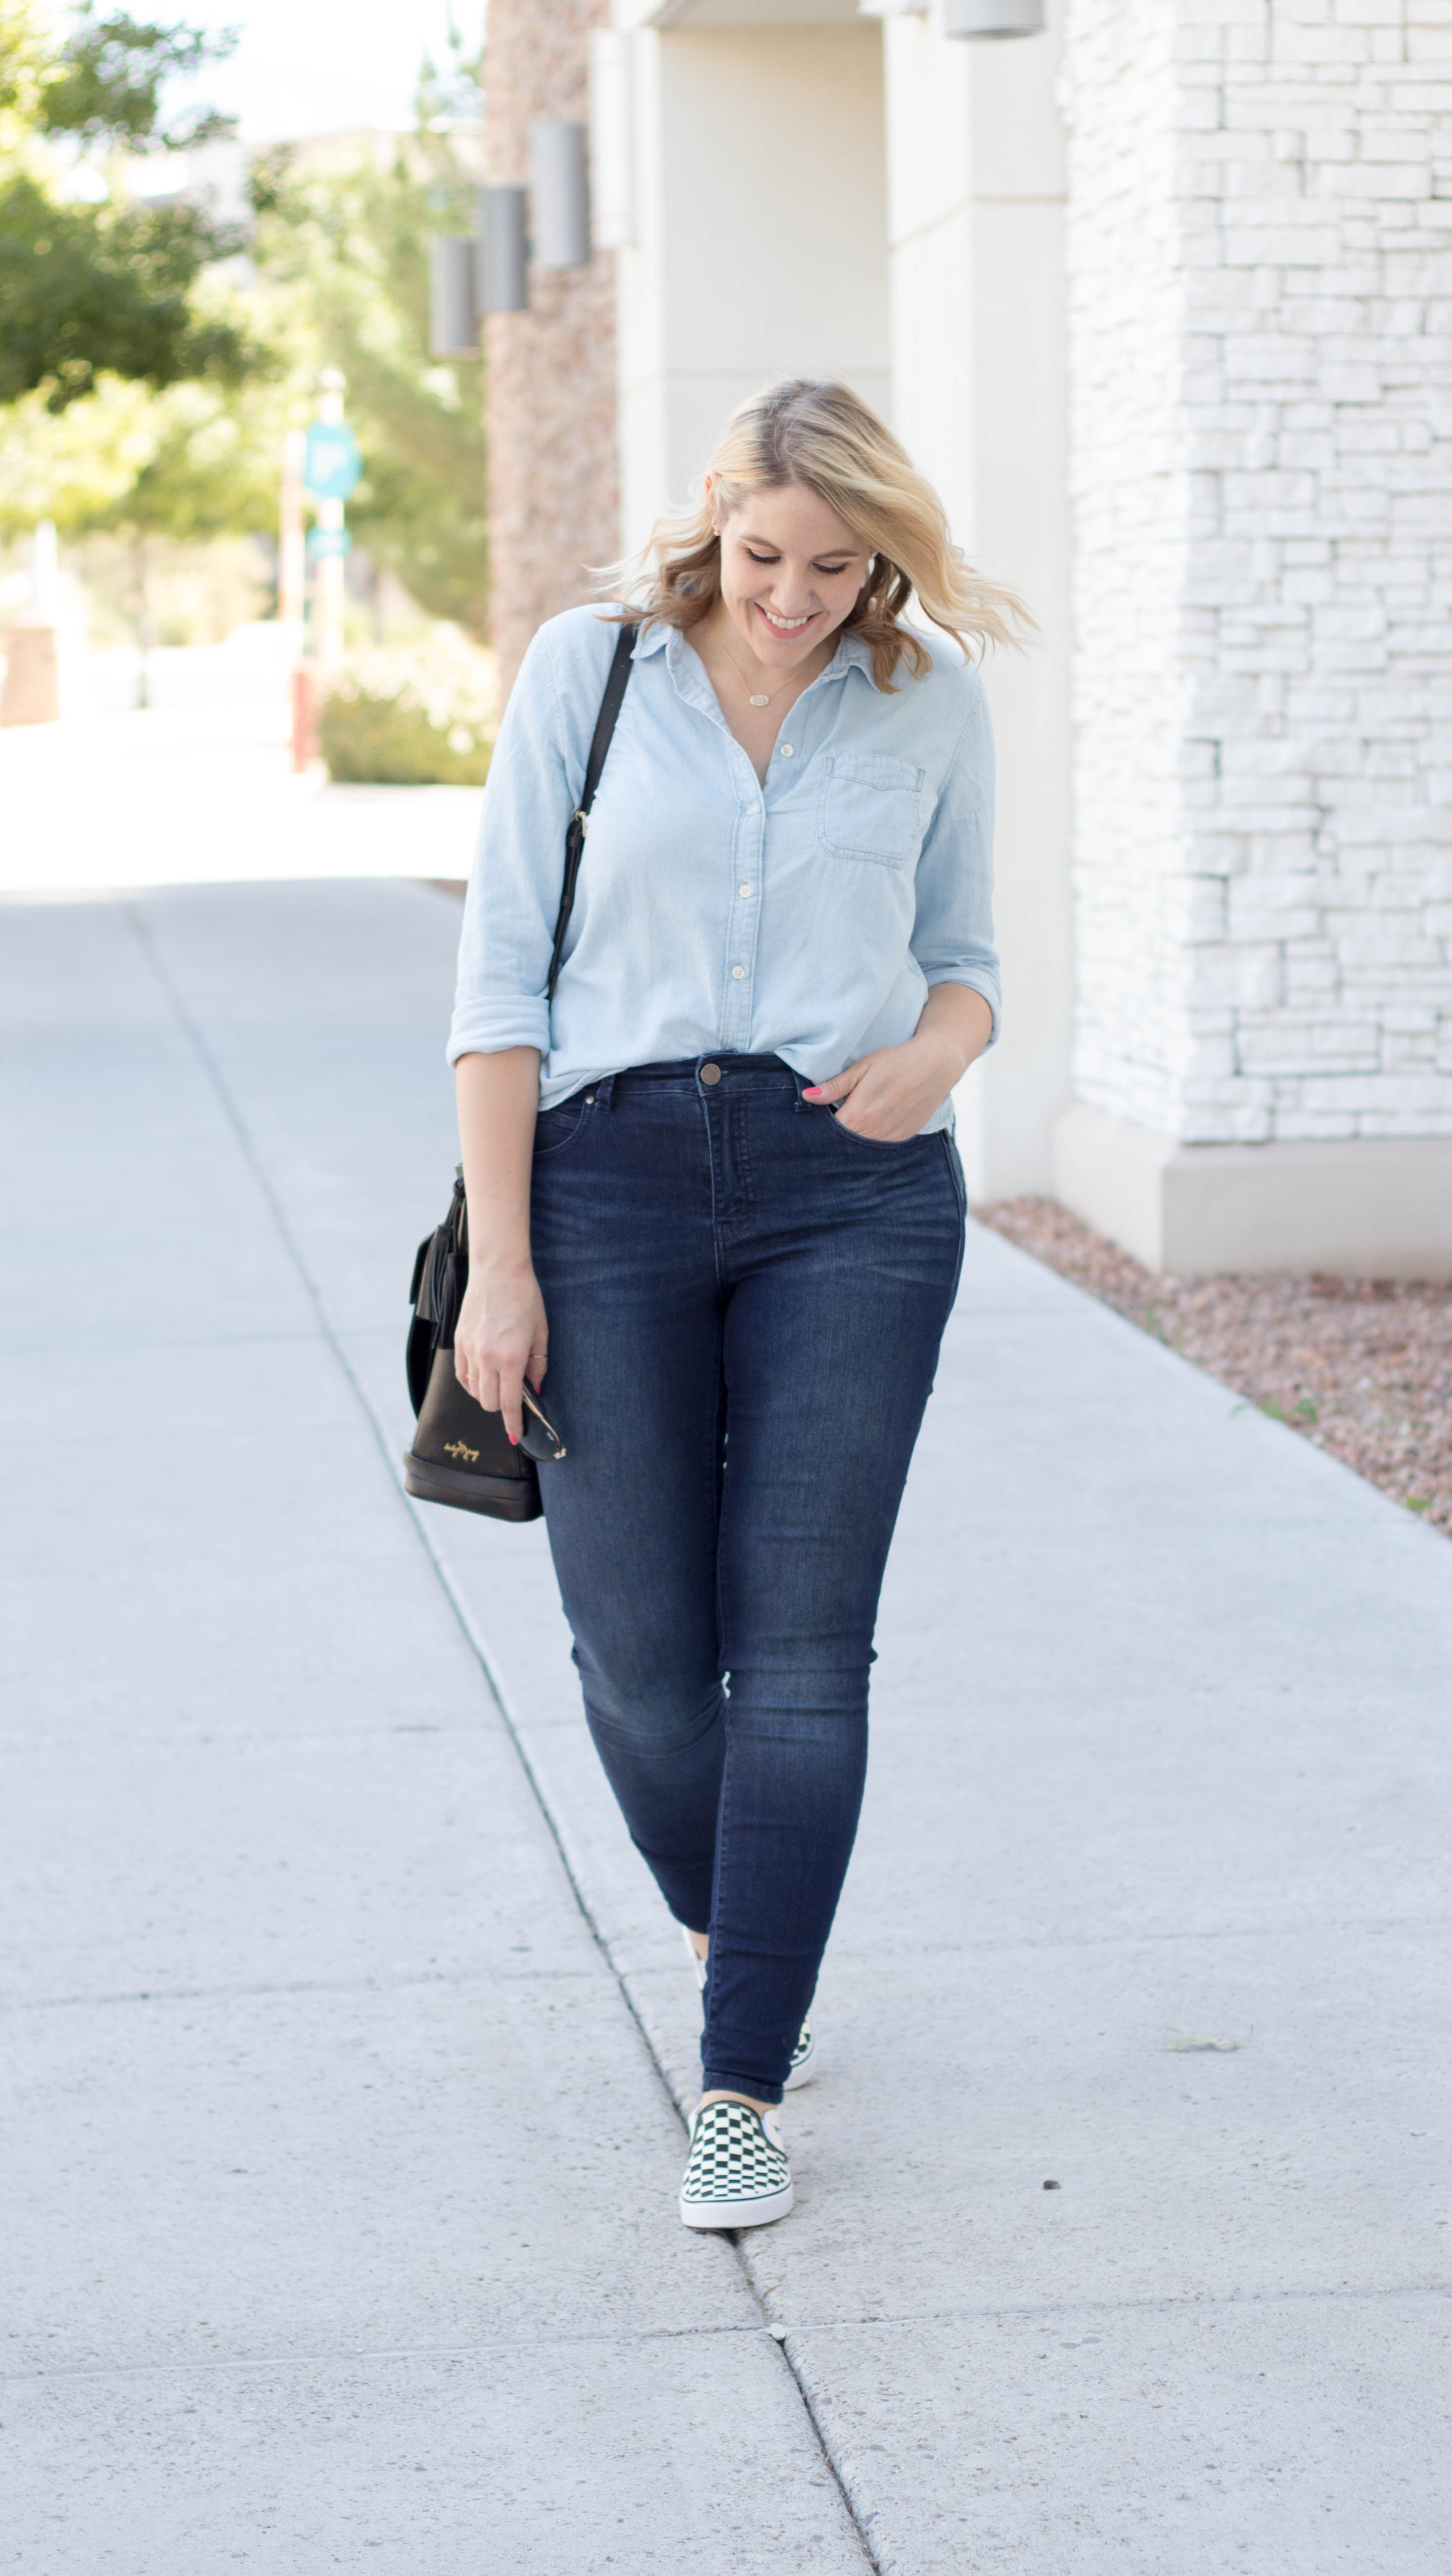 perfect outfit for any mom #momstyle #momfashion #denim